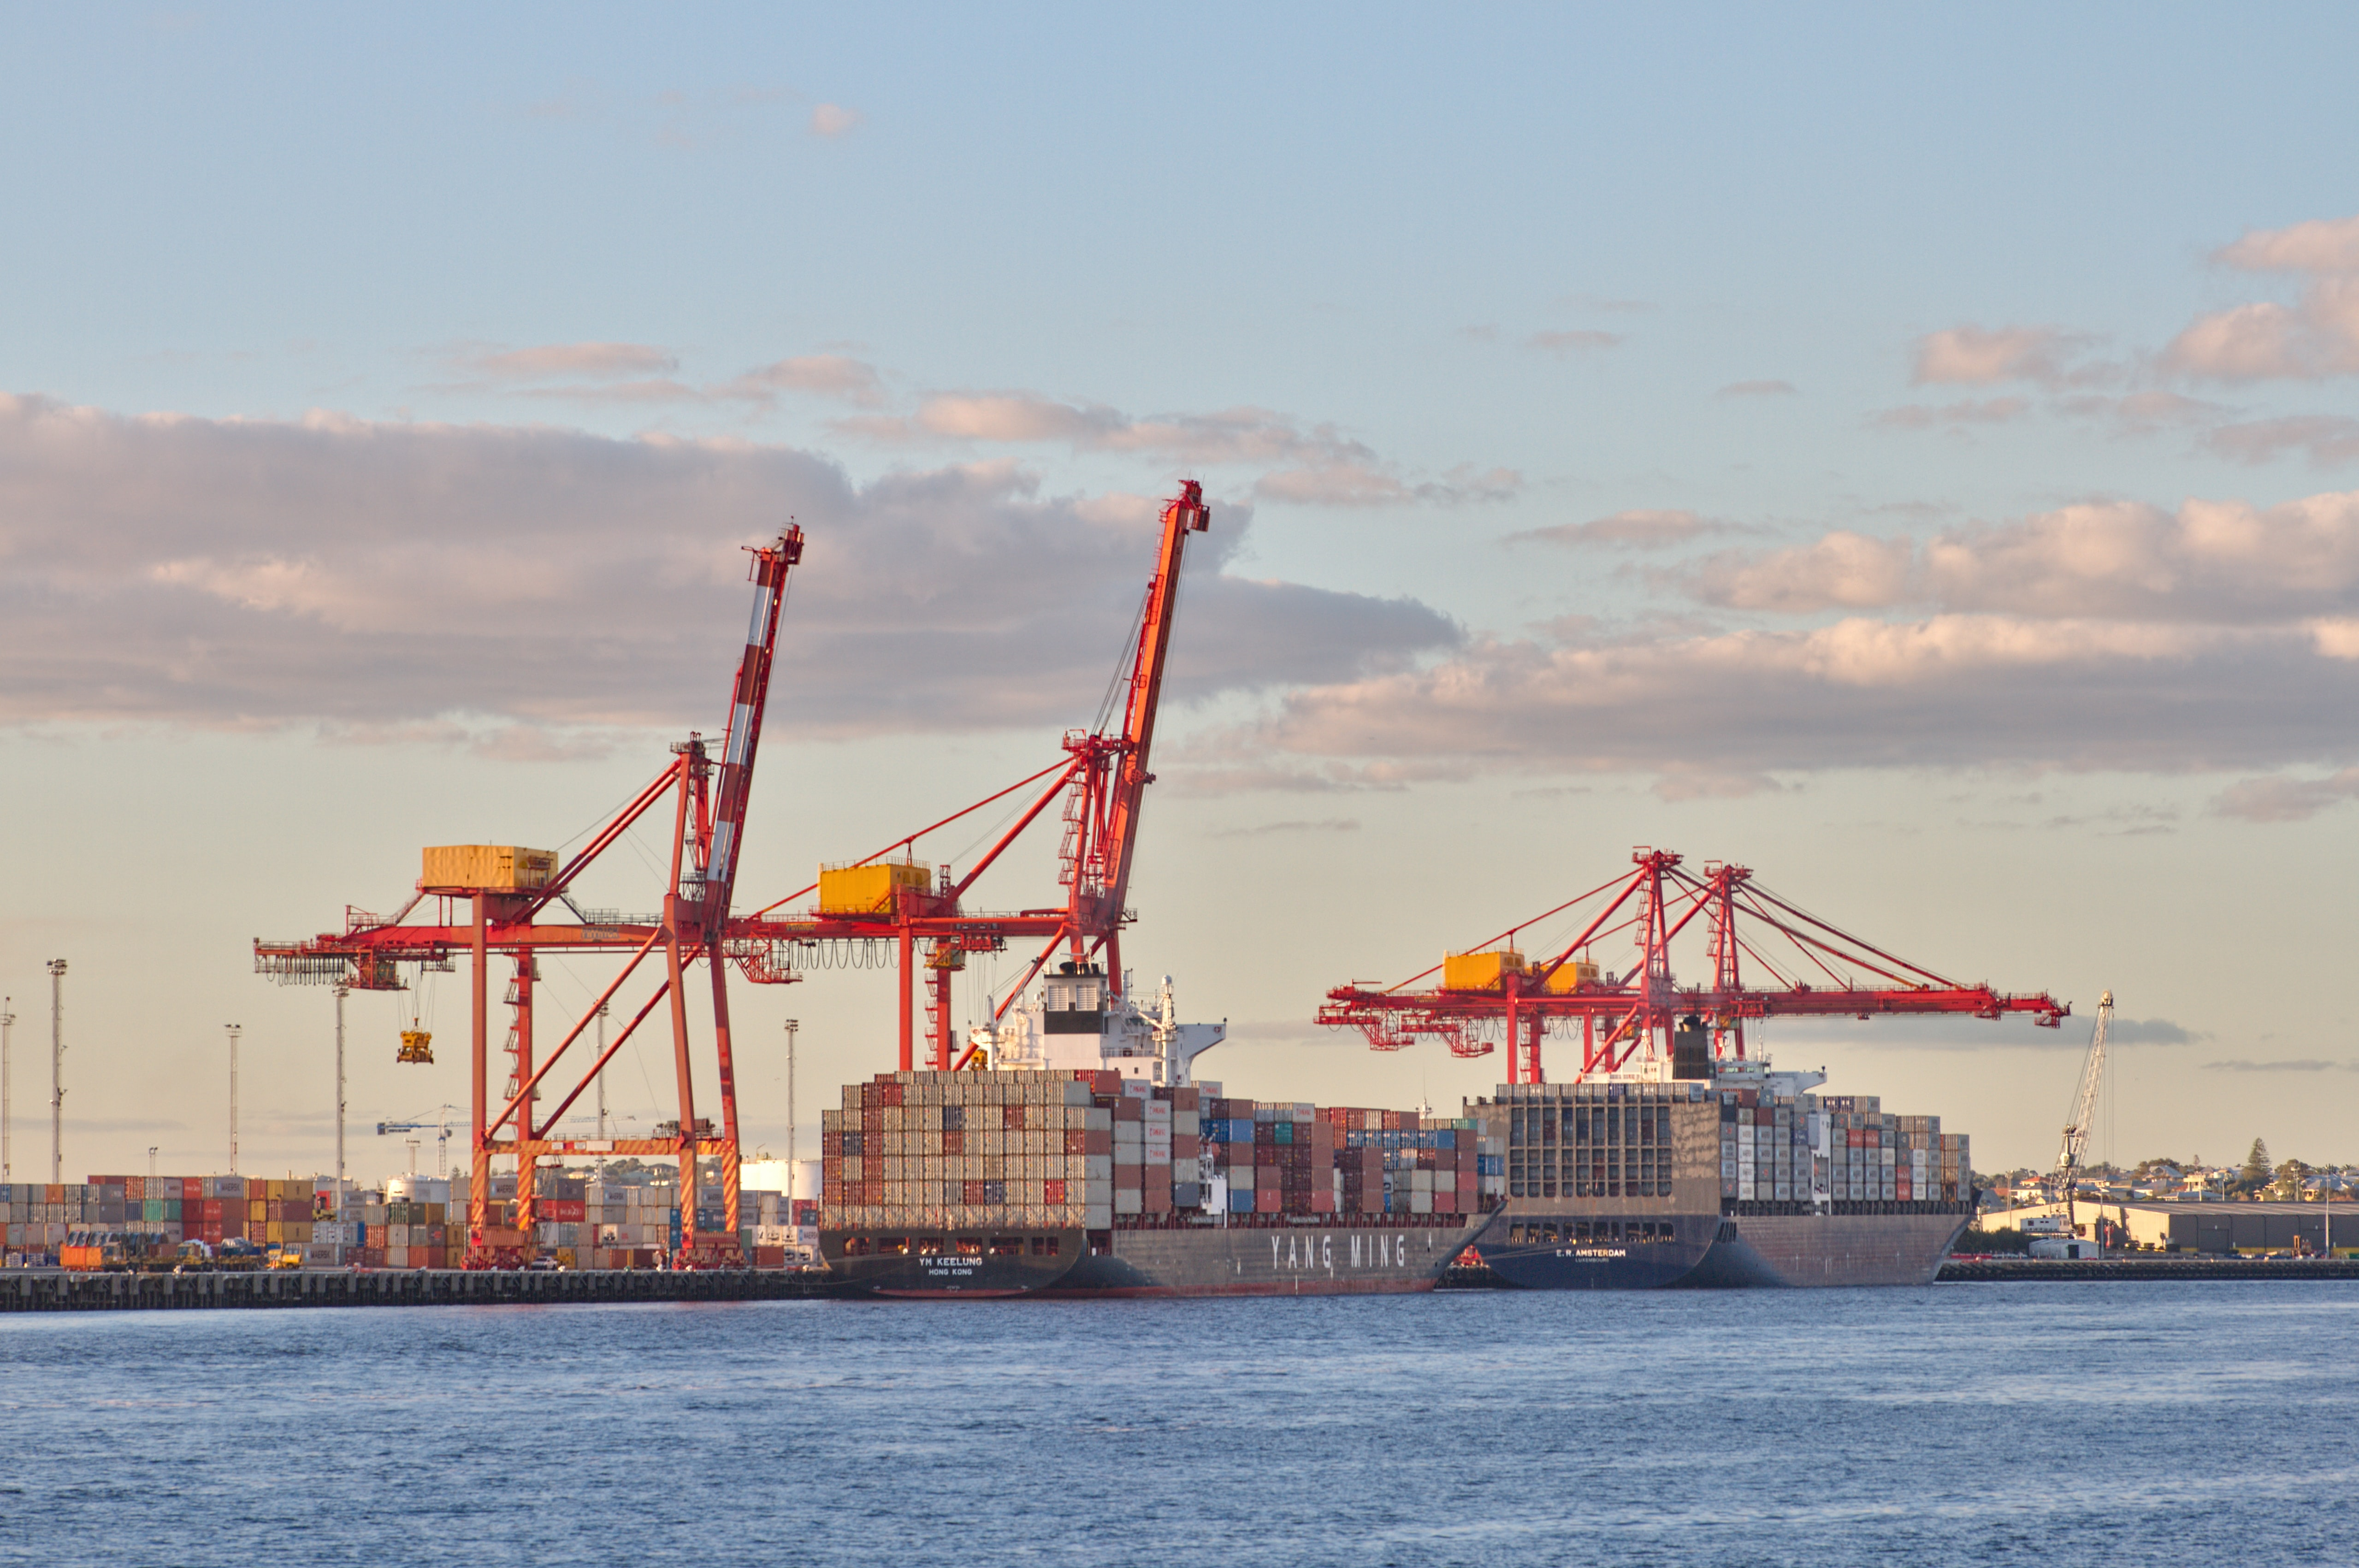 Image of several container ships filled with containers next to cranes ready for unloading